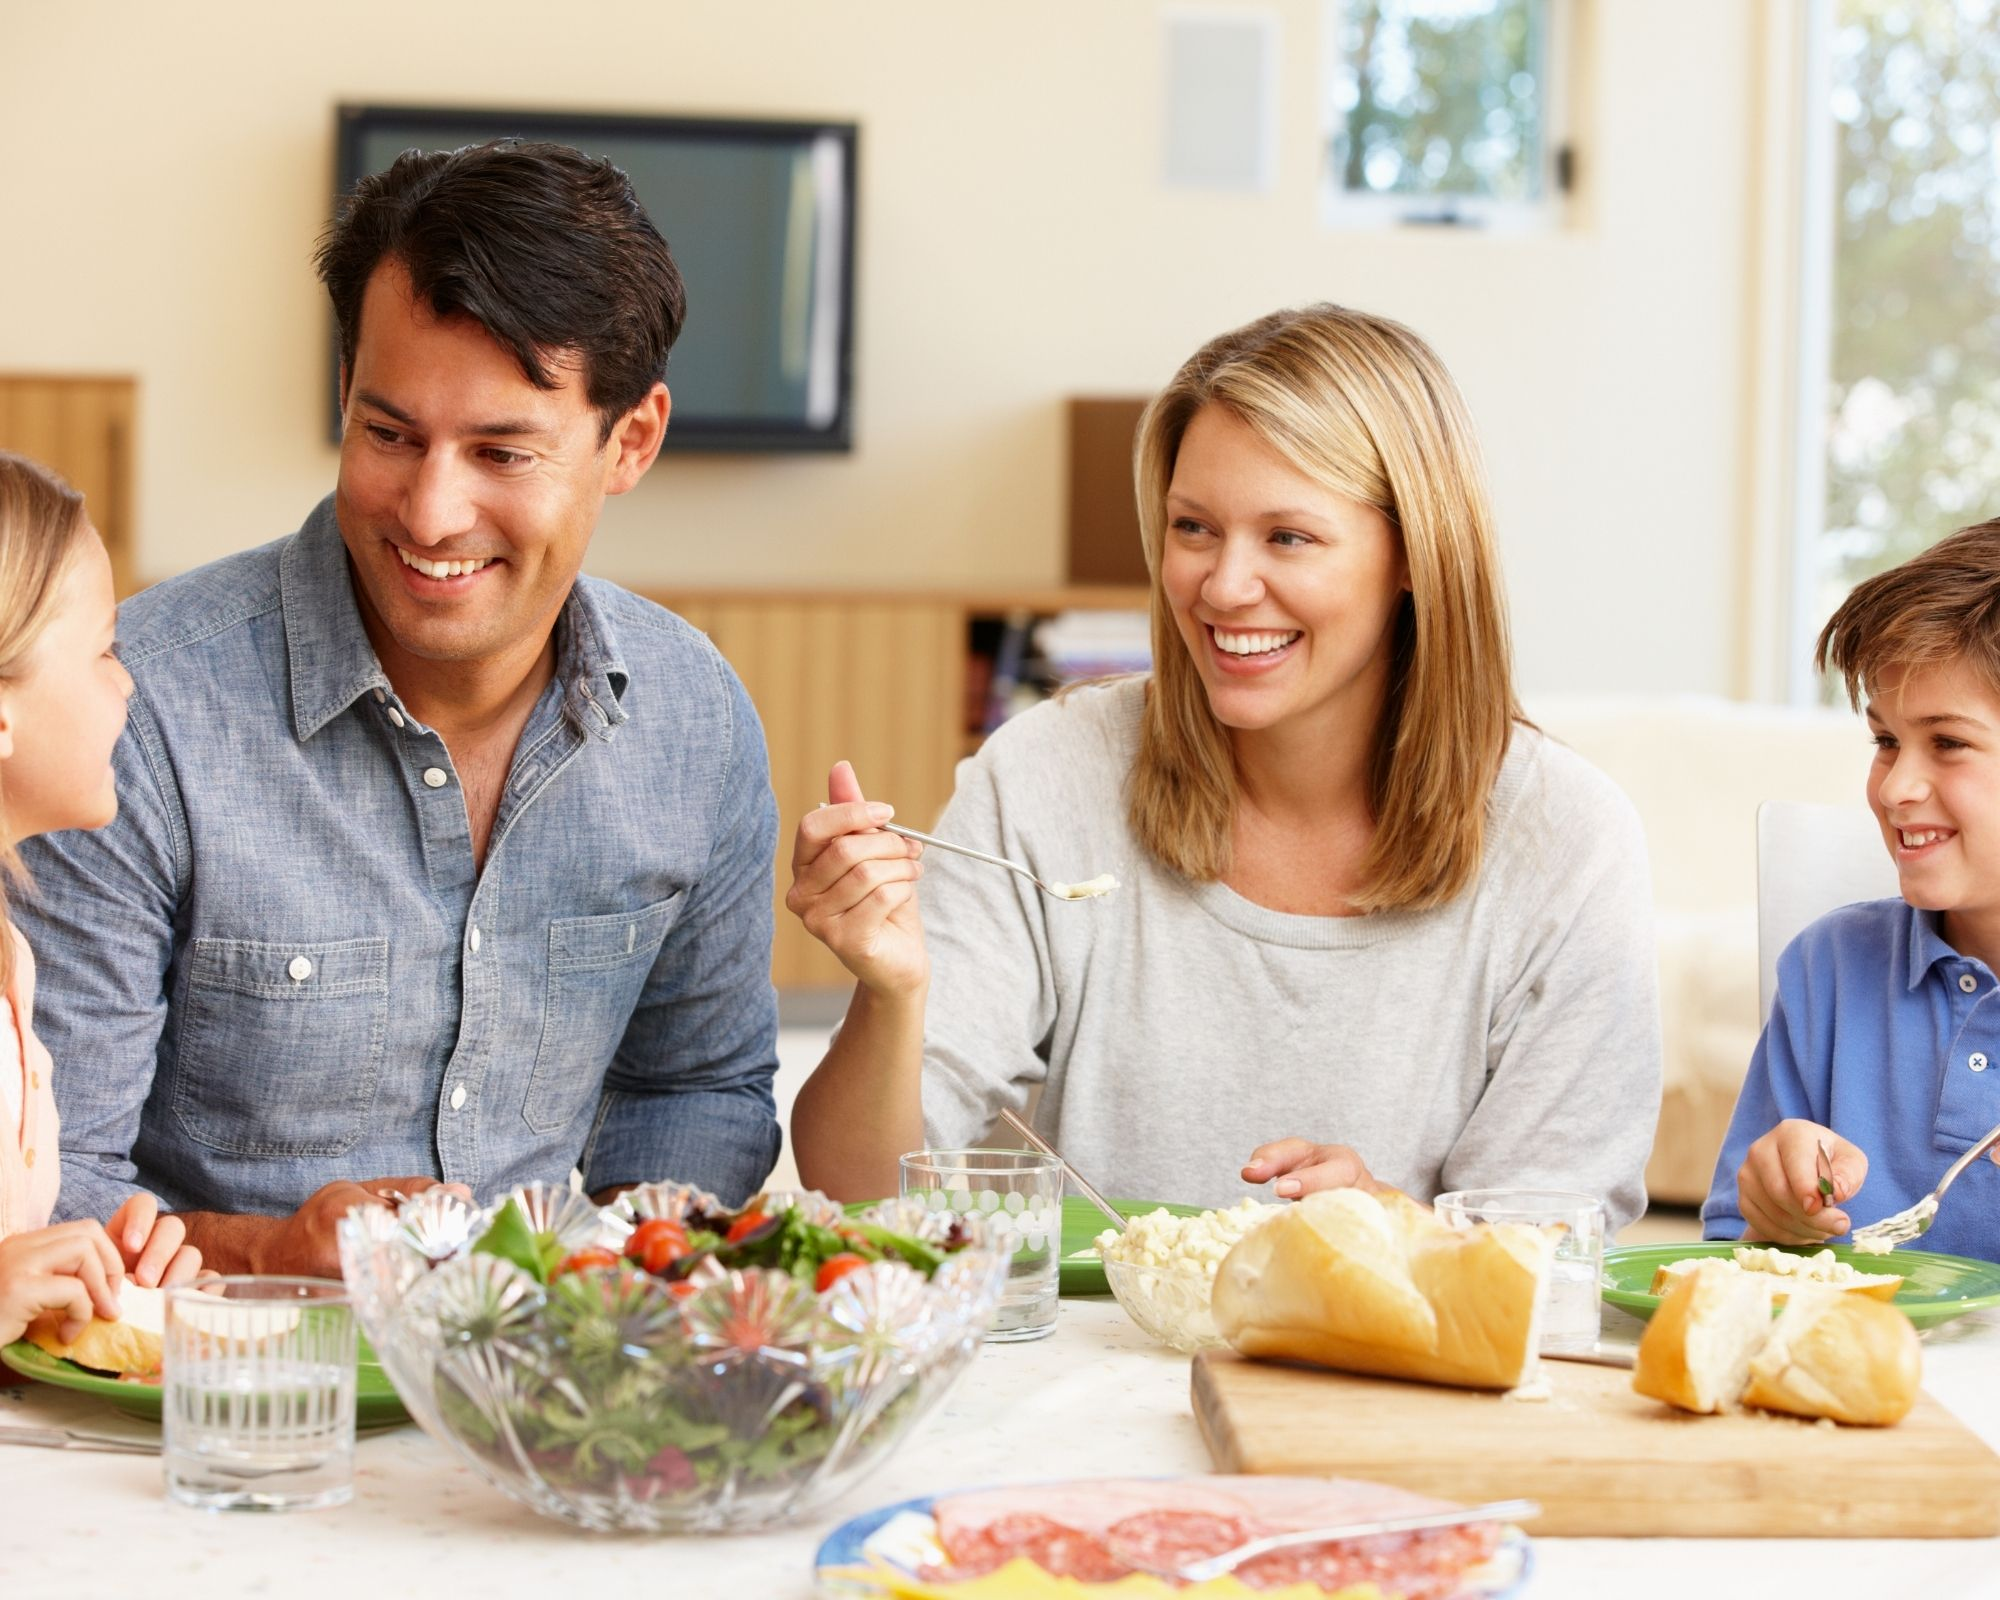 Family eating at a table - intermittent